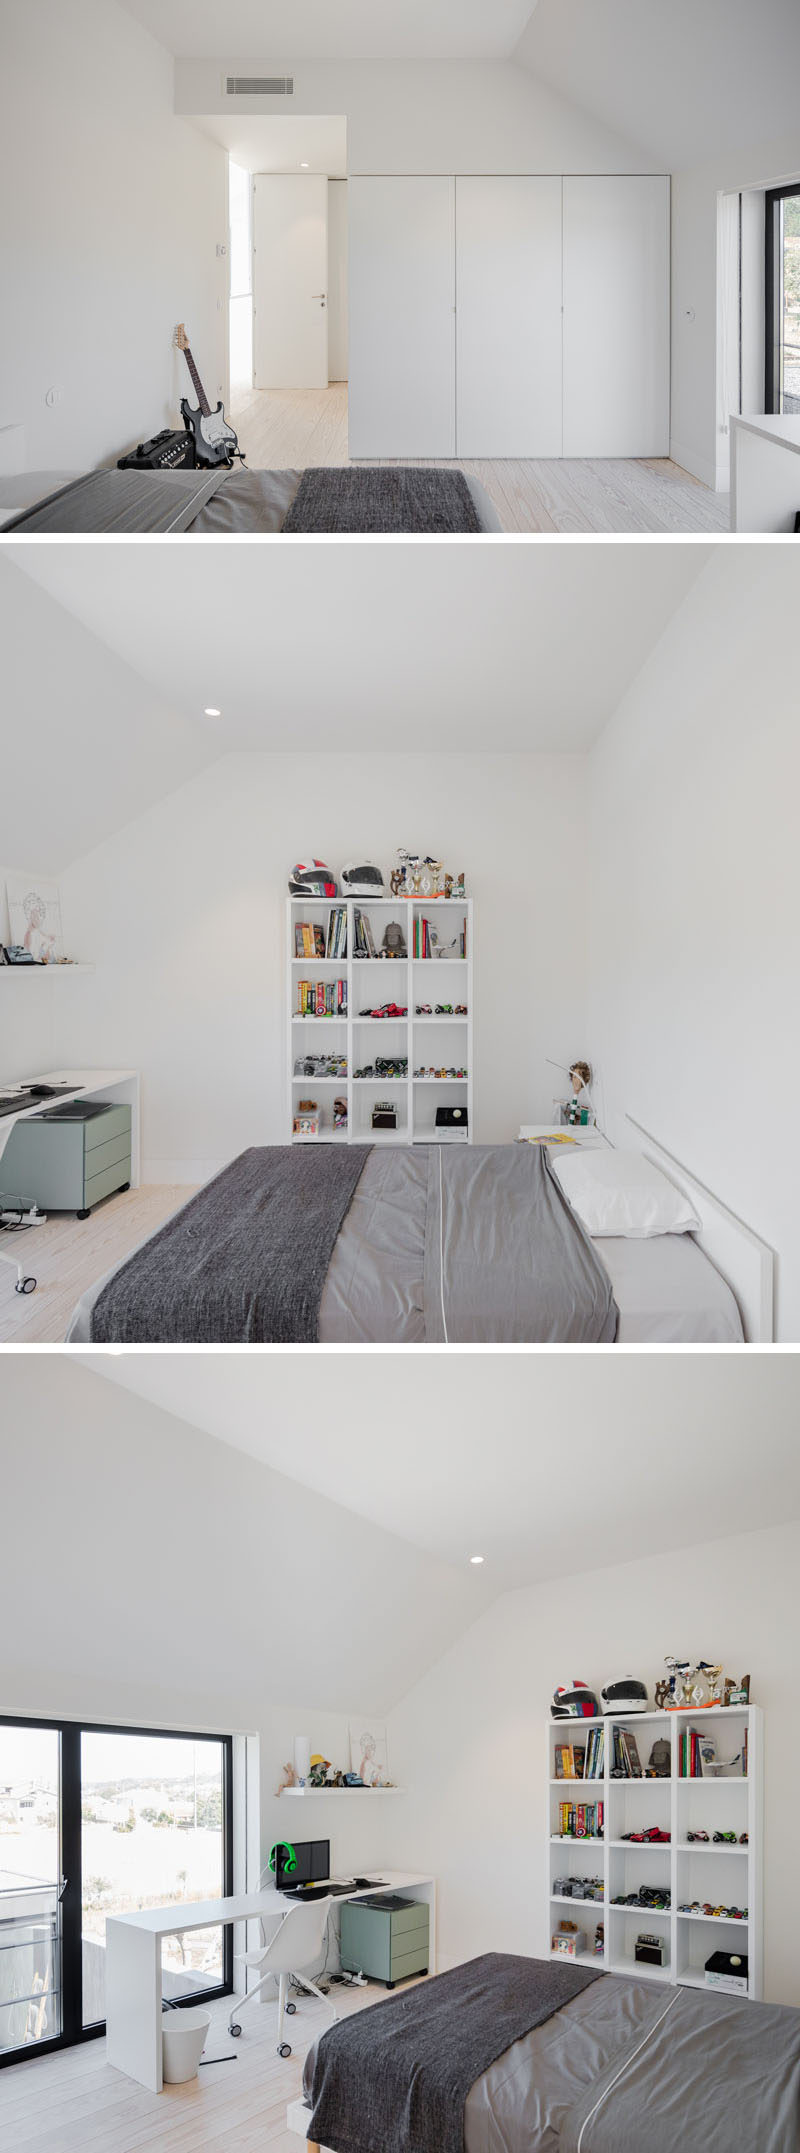 This modern kids bedroom has a minimalist white built-in wardrobe and simple shelving. The desk and bed have both been positioned to take advantage of the view from the windows. #KidsBedroom #ModernKidsBedroom #BedroomDesign